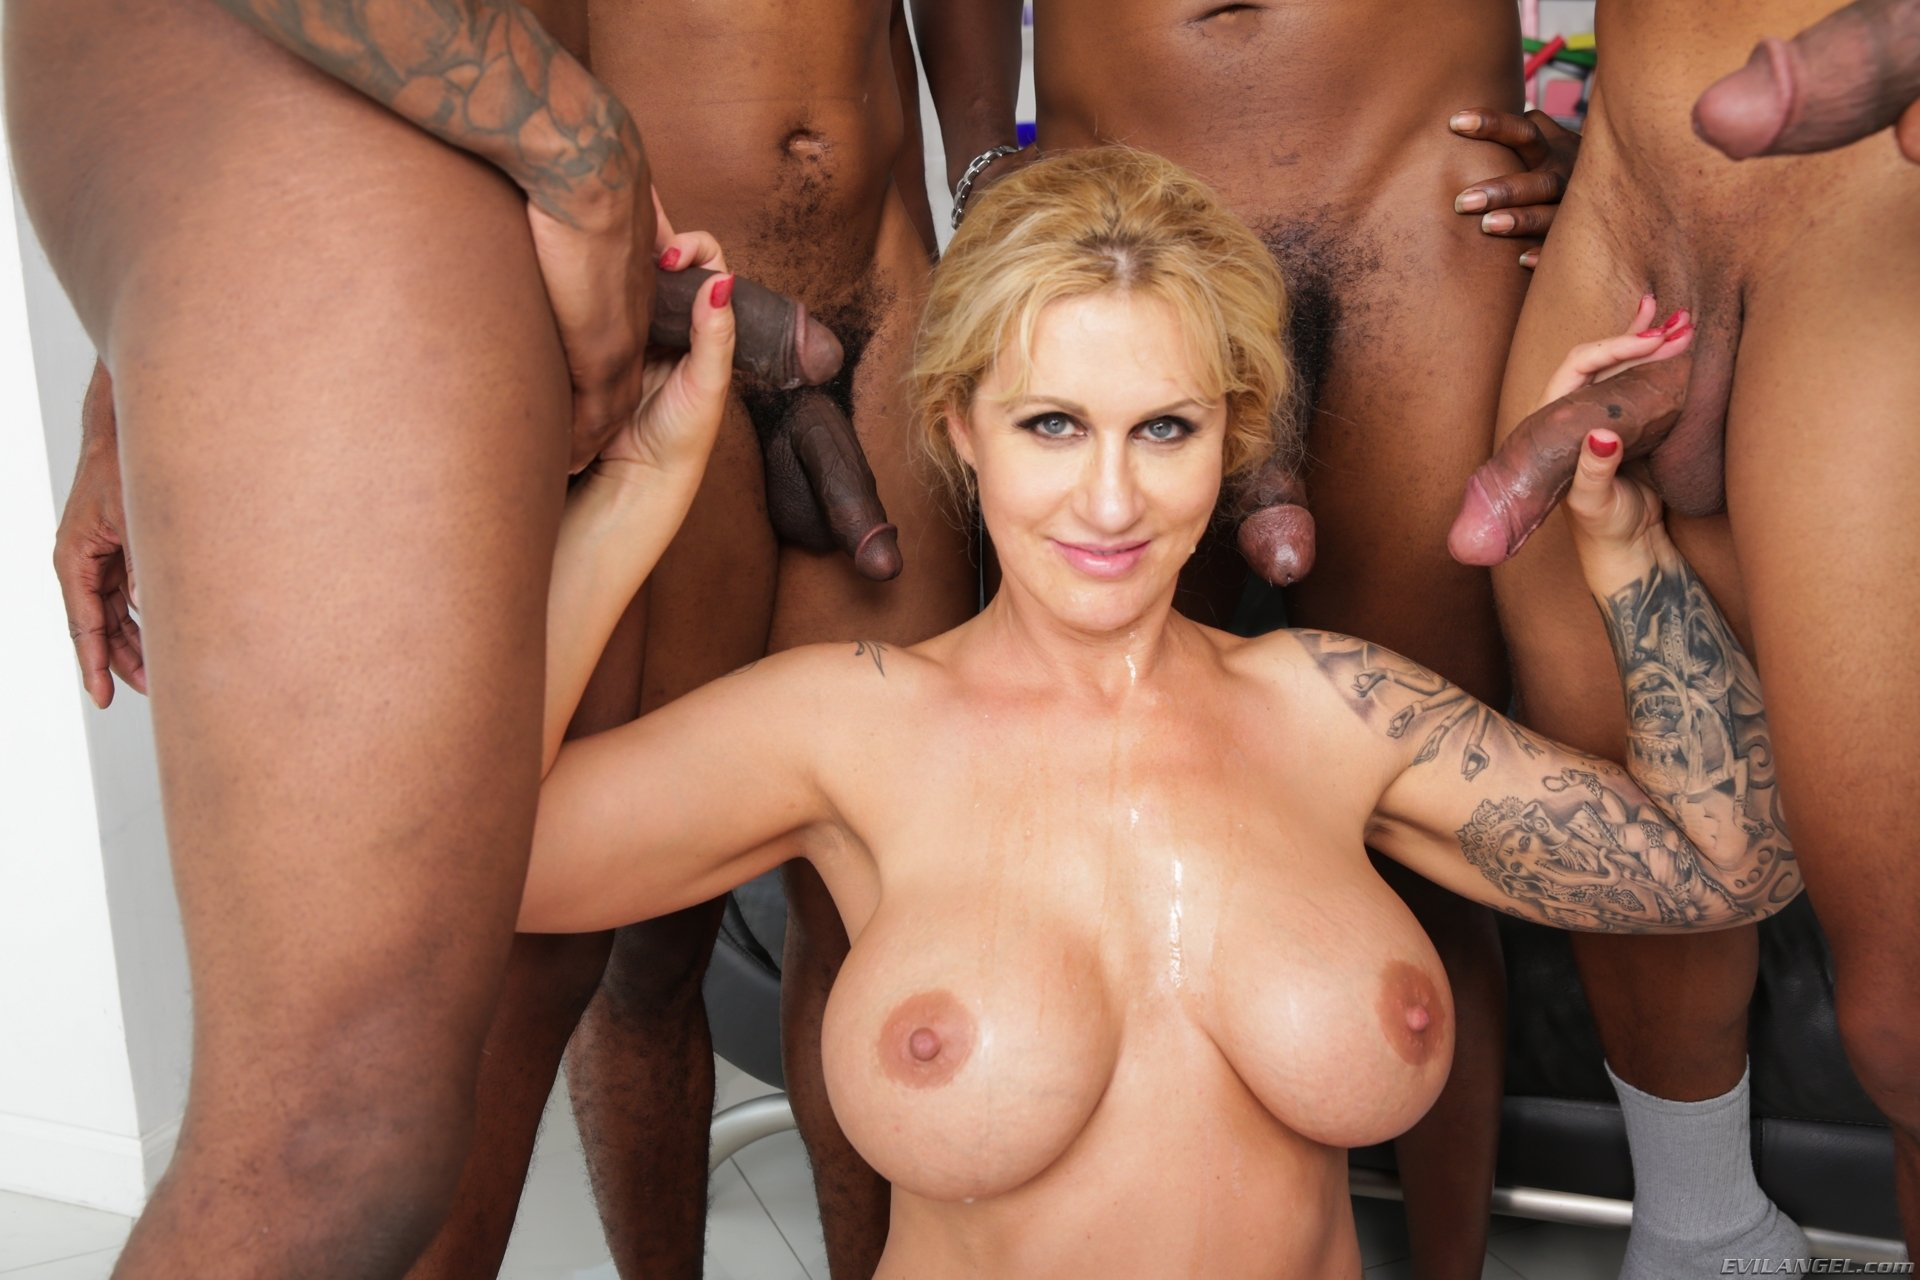 Huge tit gangbang gallery have forgotten